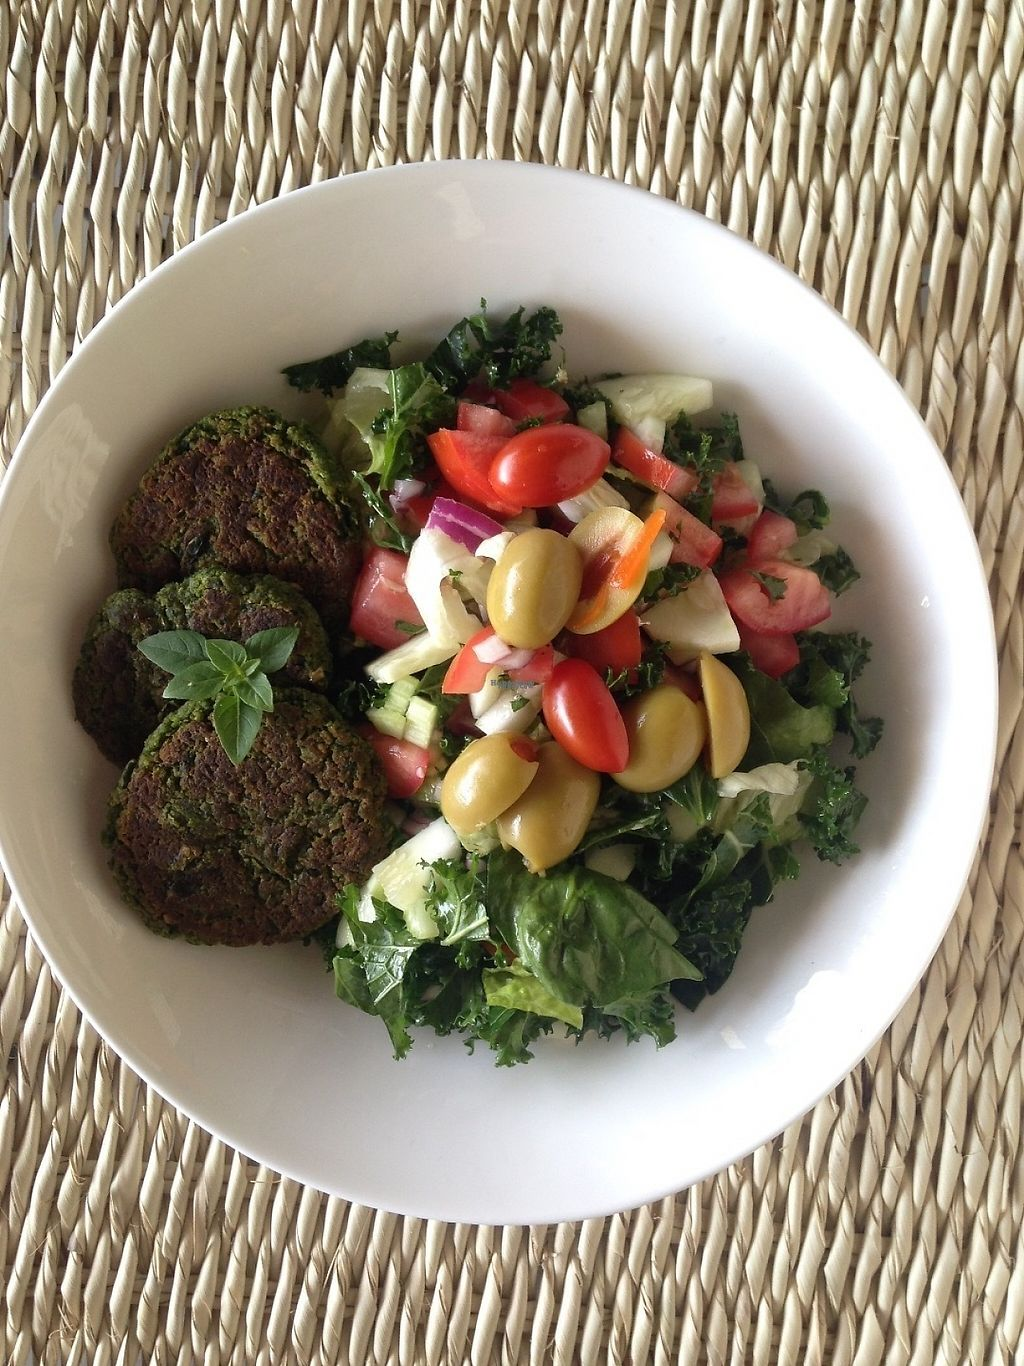 """Photo of Grunzeug Veggie Bistro  by <a href=""""/members/profile/Marijo"""">Marijo</a> <br/>Very creative Salads <br/> March 17, 2017  - <a href='/contact/abuse/image/88762/237604'>Report</a>"""